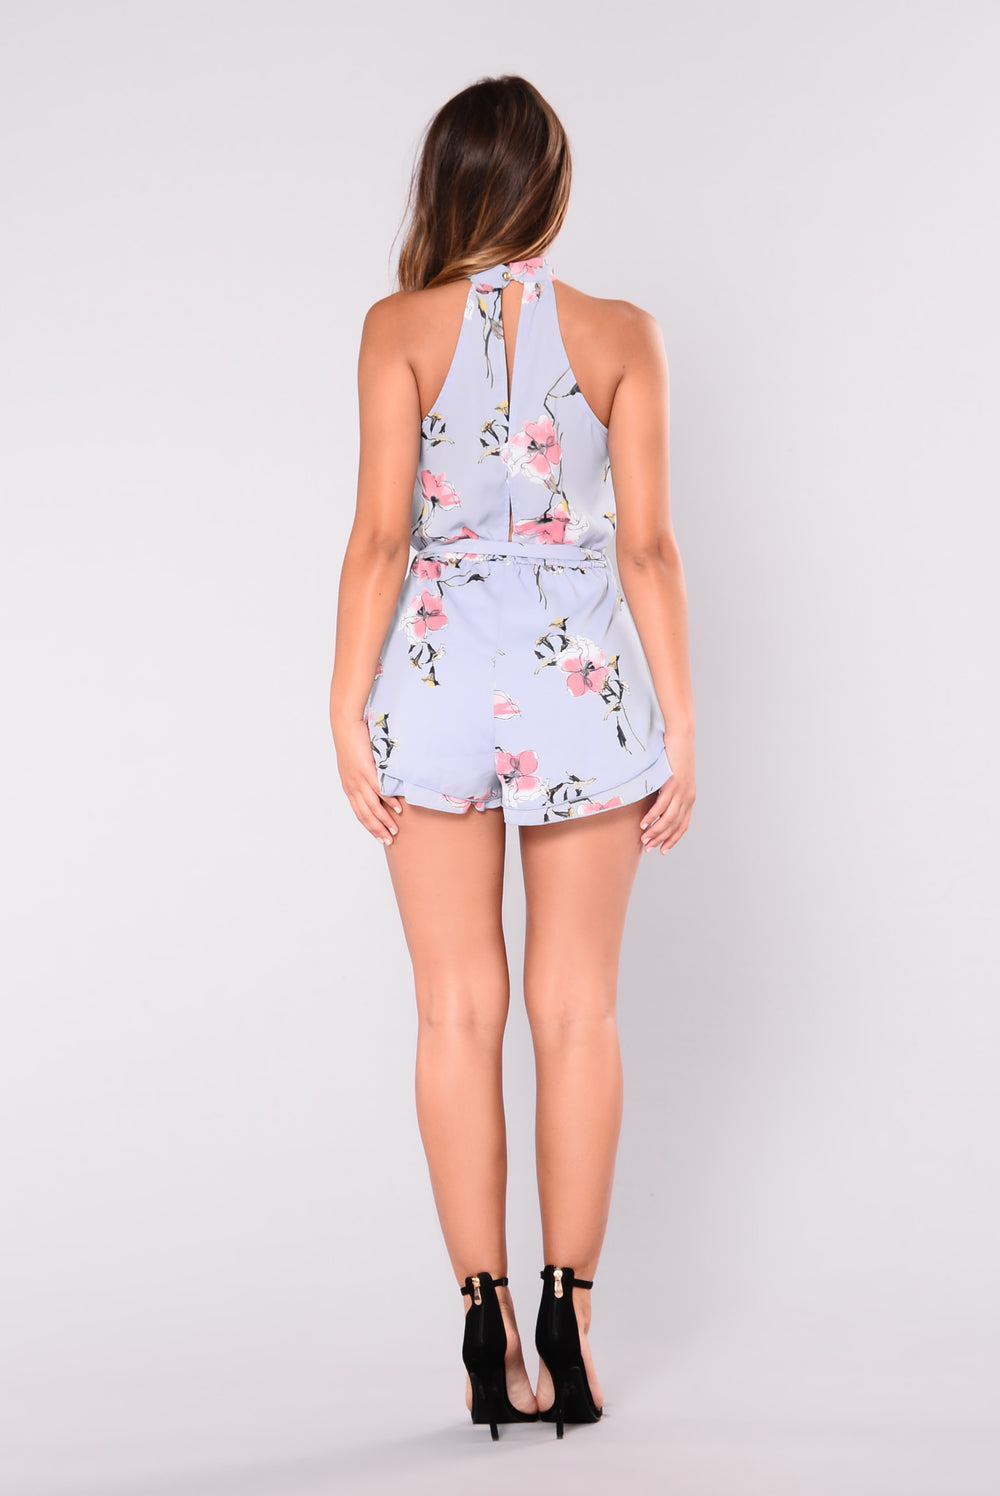 Beauty Is Within Floral Romper - Blue